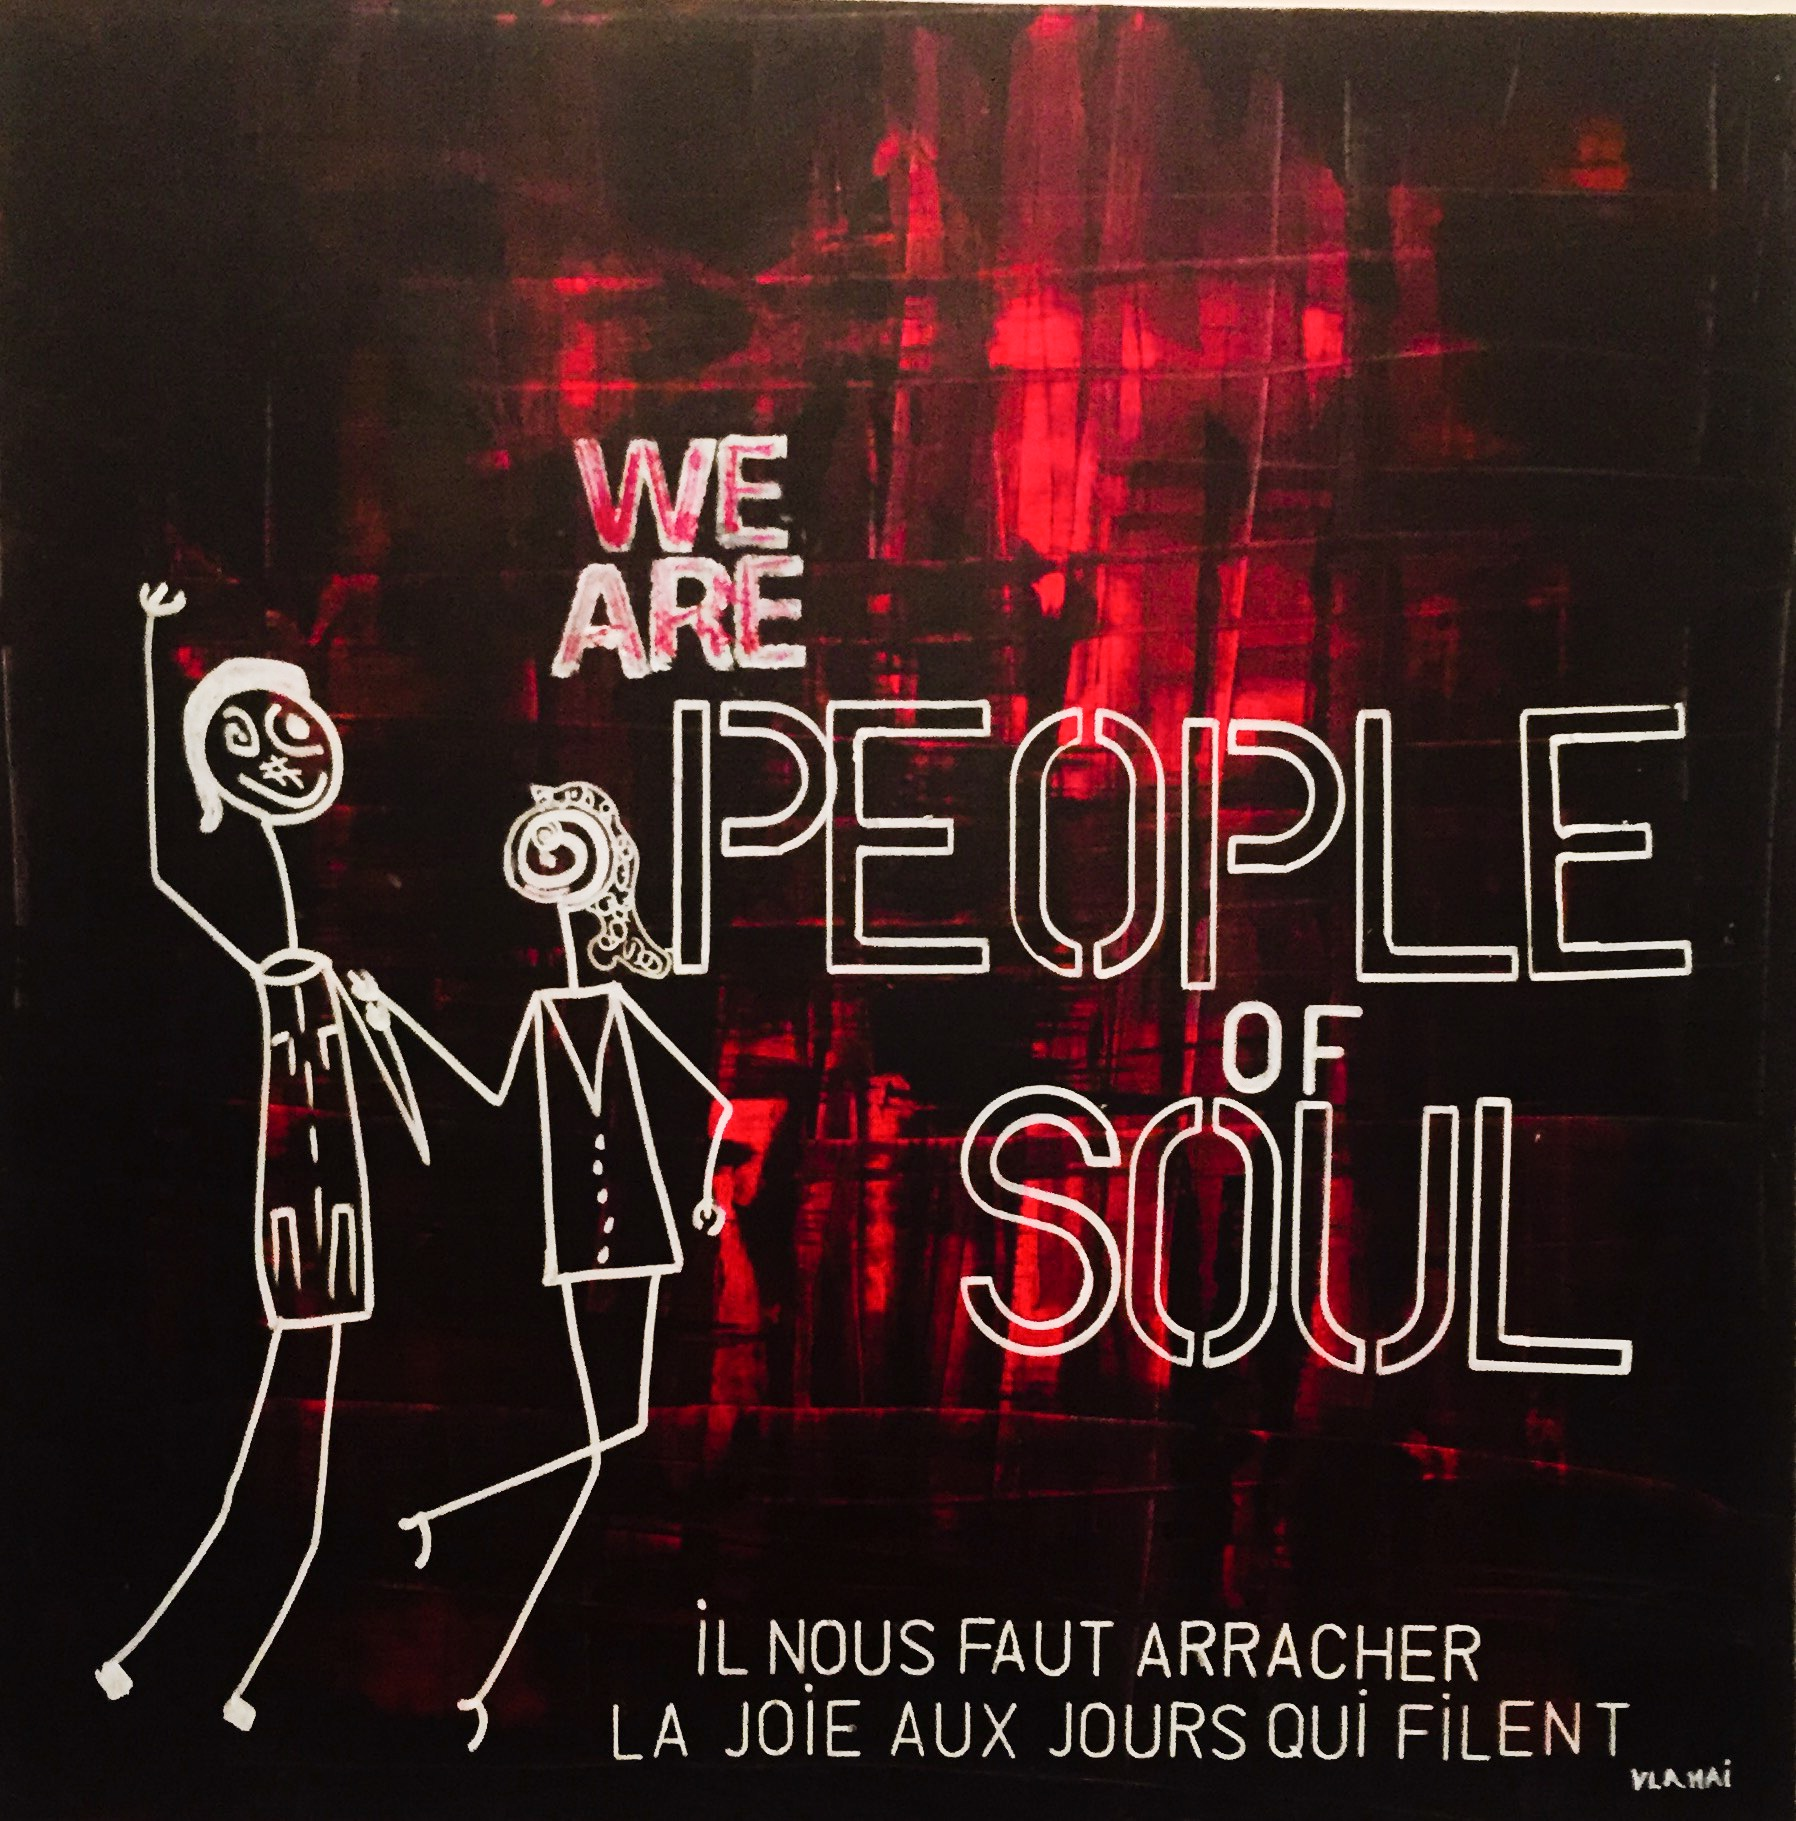 People of soul